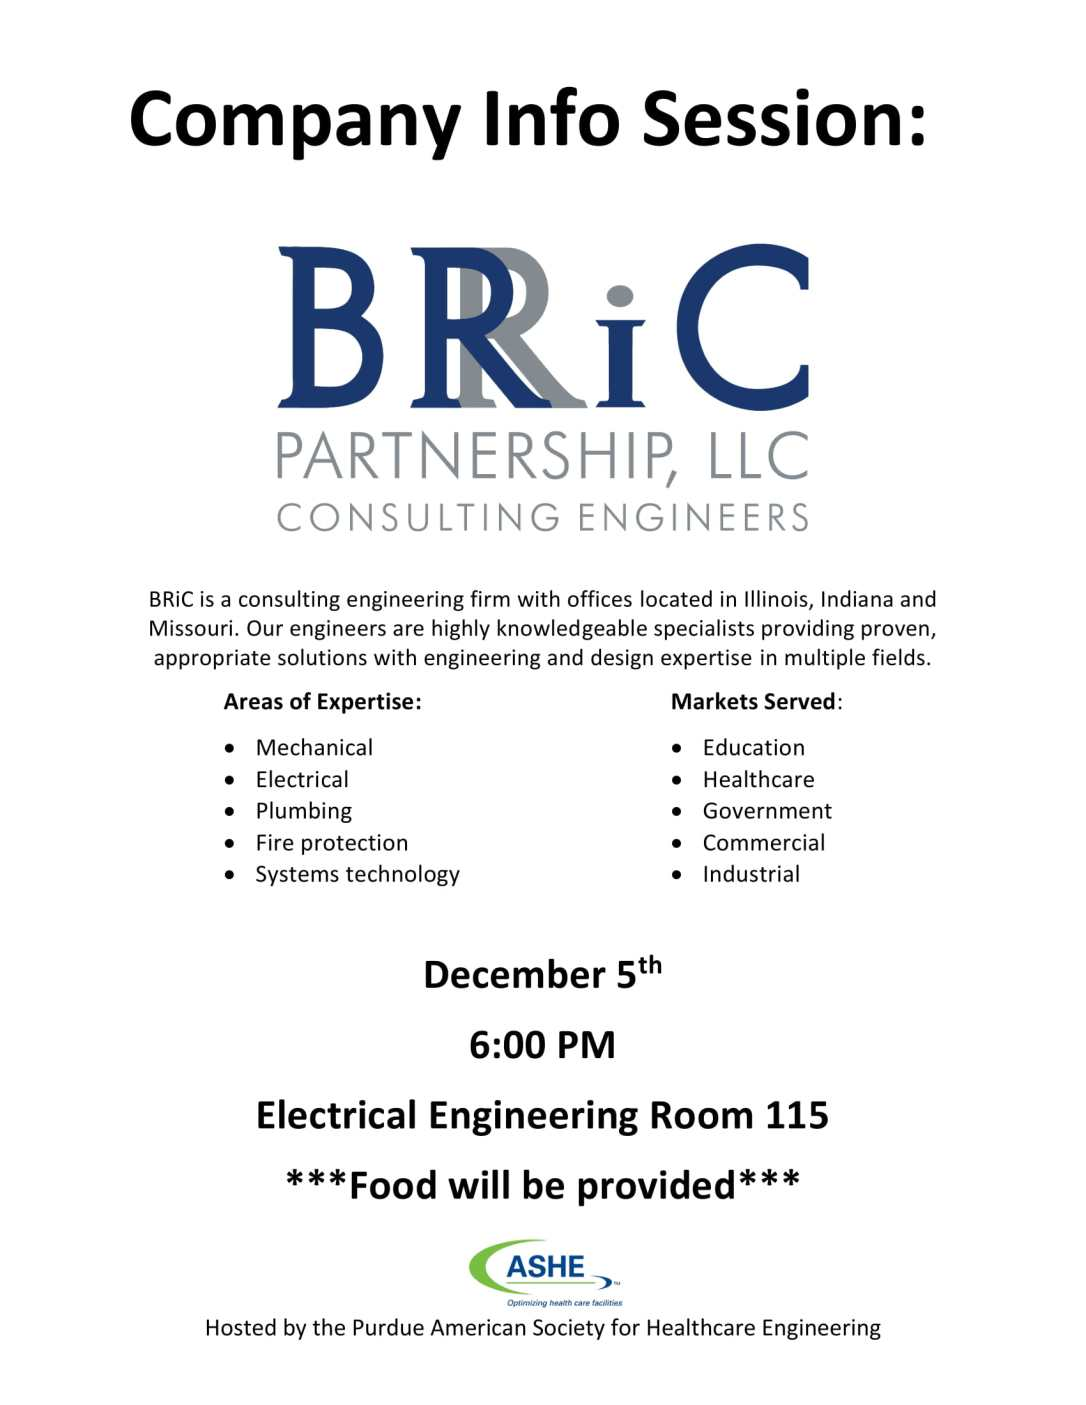 BRiC Consulting Info Session Flyer-1